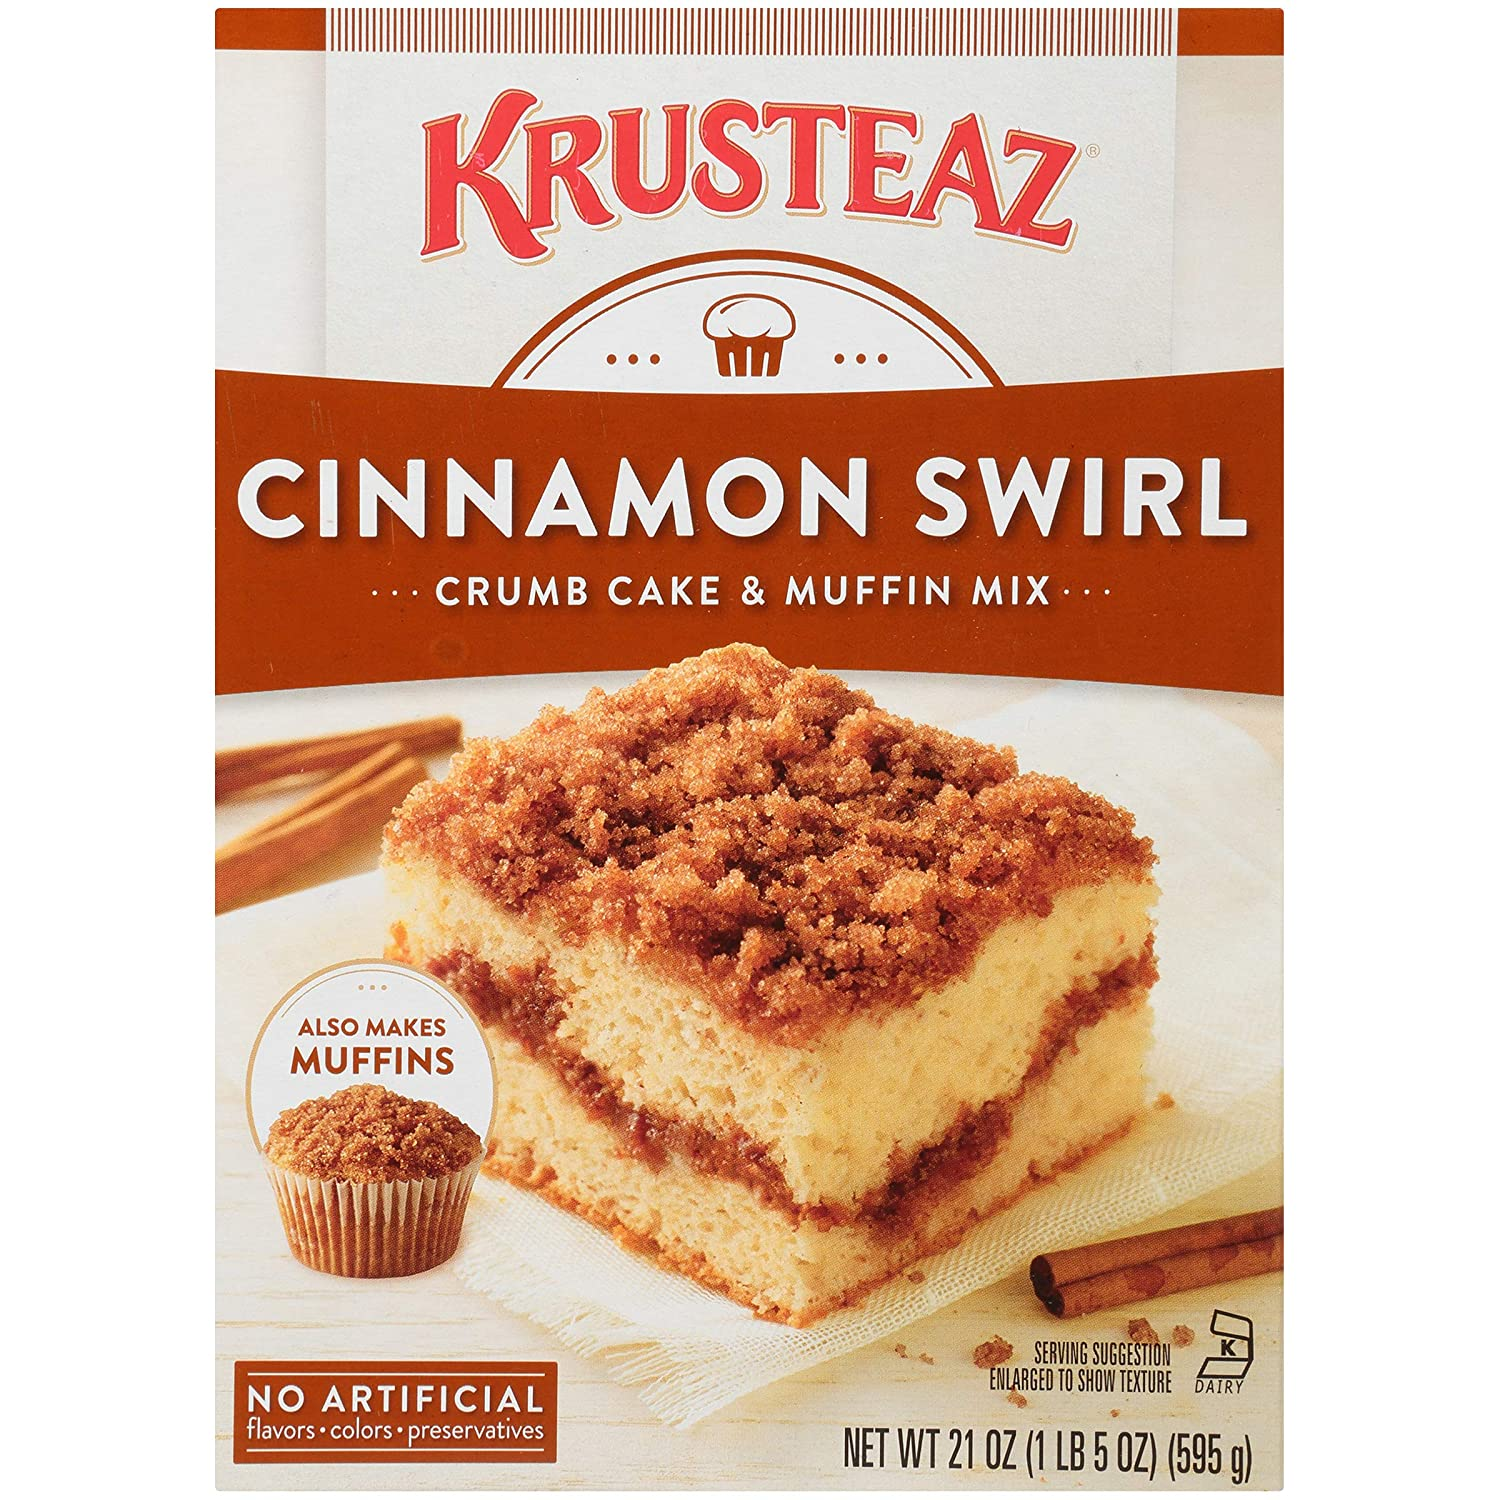 Krusteaz Cinnamon Swirl Crumb Cake and Muffin Mix, 21-Ounce Boxes (Pack of 4)